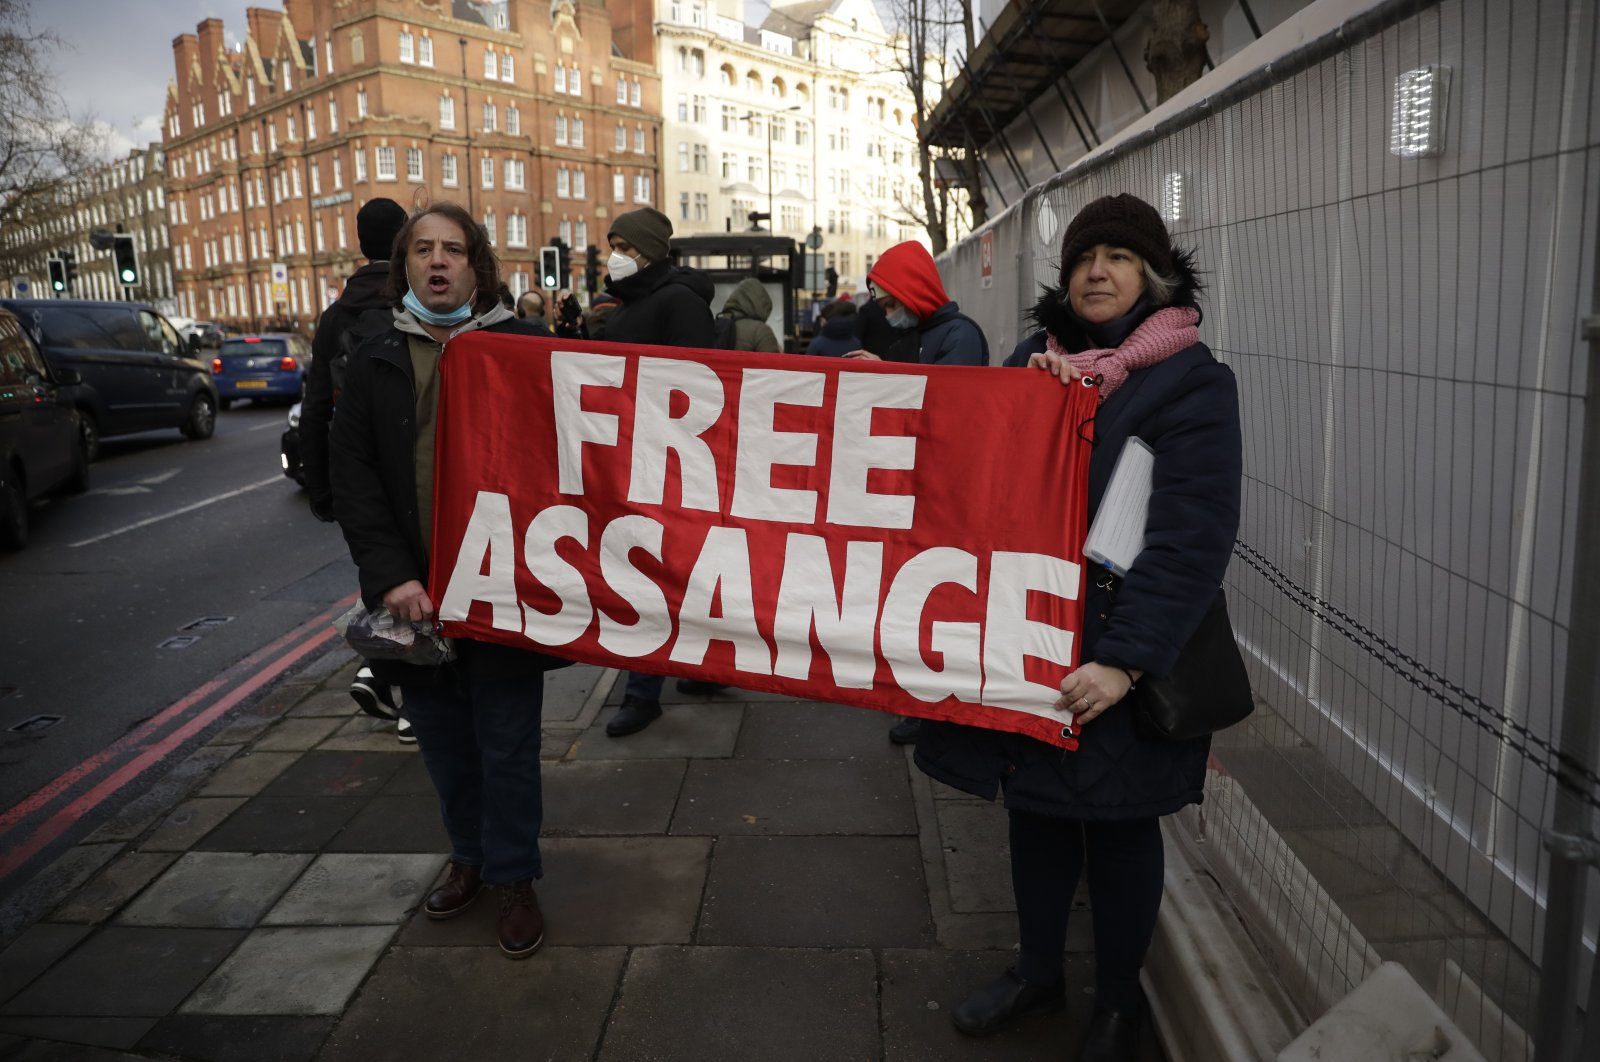 Julian Assange supporters react outside the Westminster Magistrates Court after Julian Assange was denied bail at a hearing in the court in London, Jan. 6, 2021. (AP Photo)